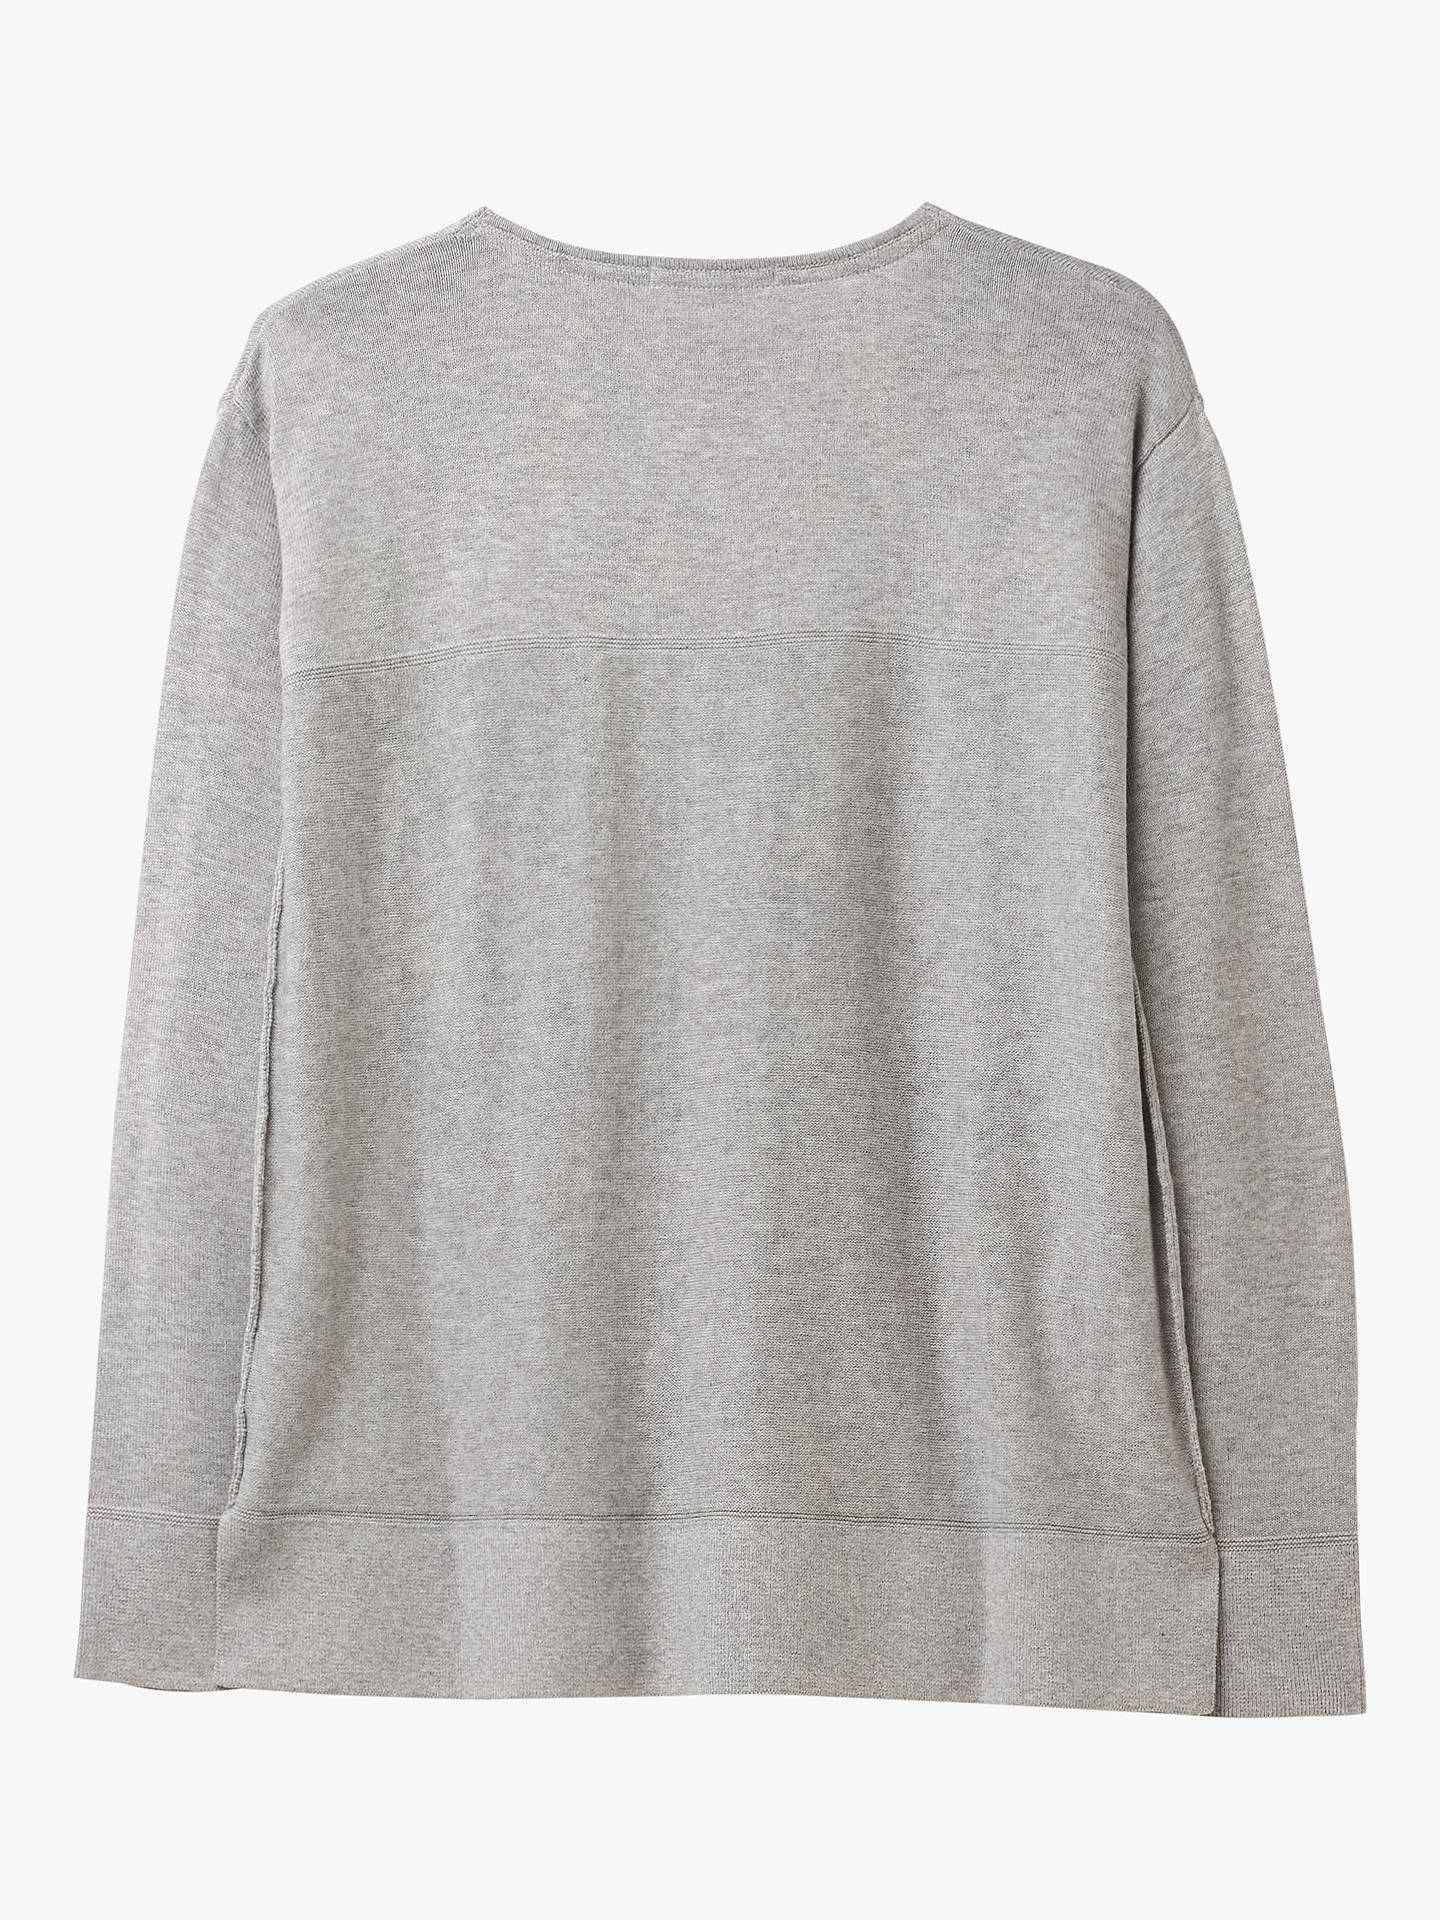 BuyWhite Stuff Scandi Jumper, Silver Grey, 16 Online at johnlewis.com